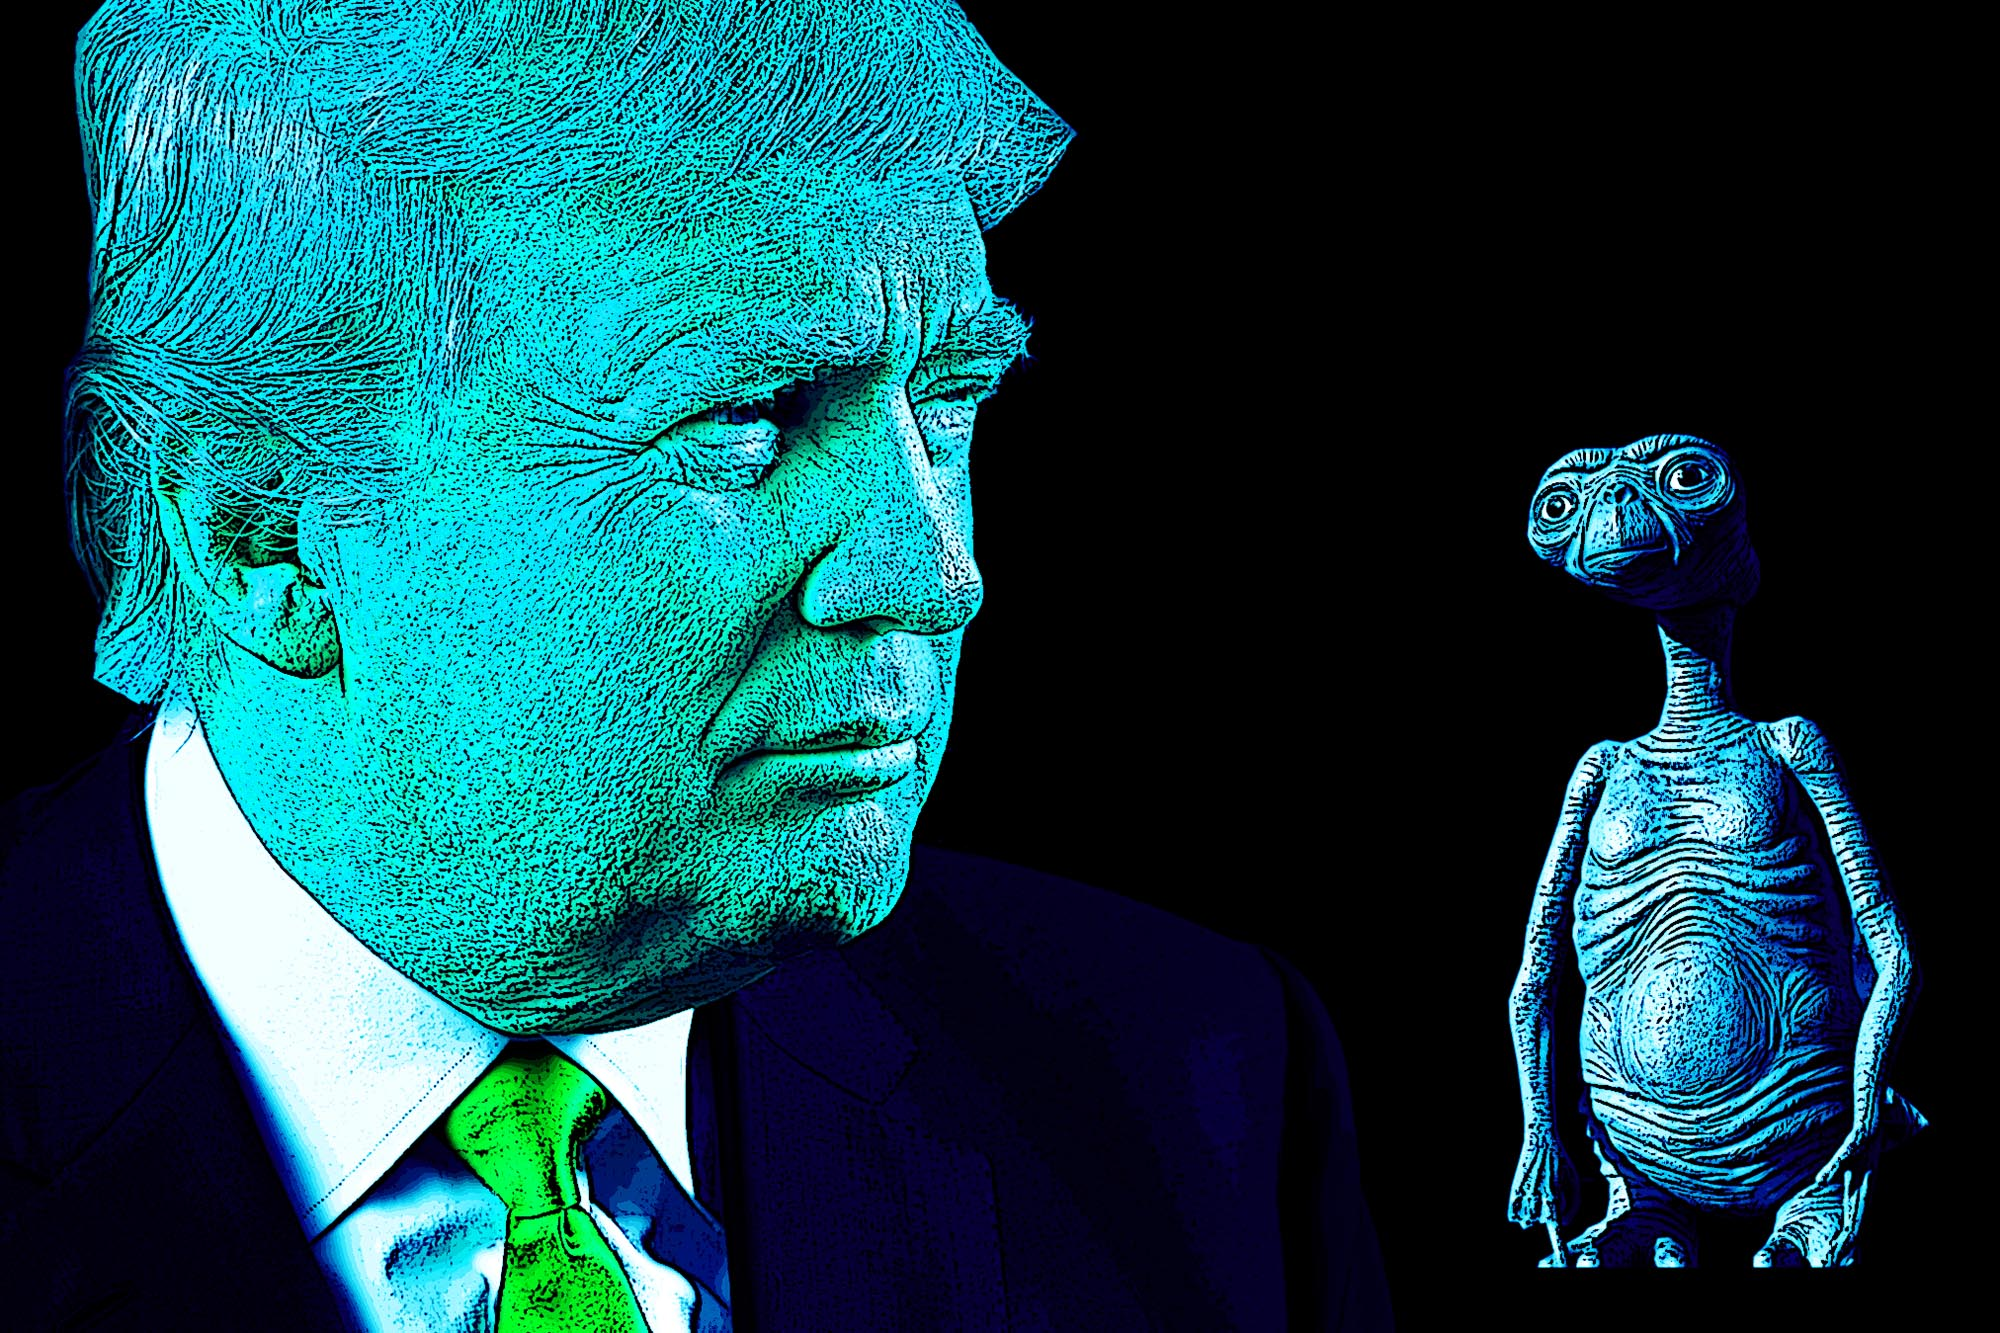 DONALD TRUMP WANTS TO KEEP AREA 51 A SECRET